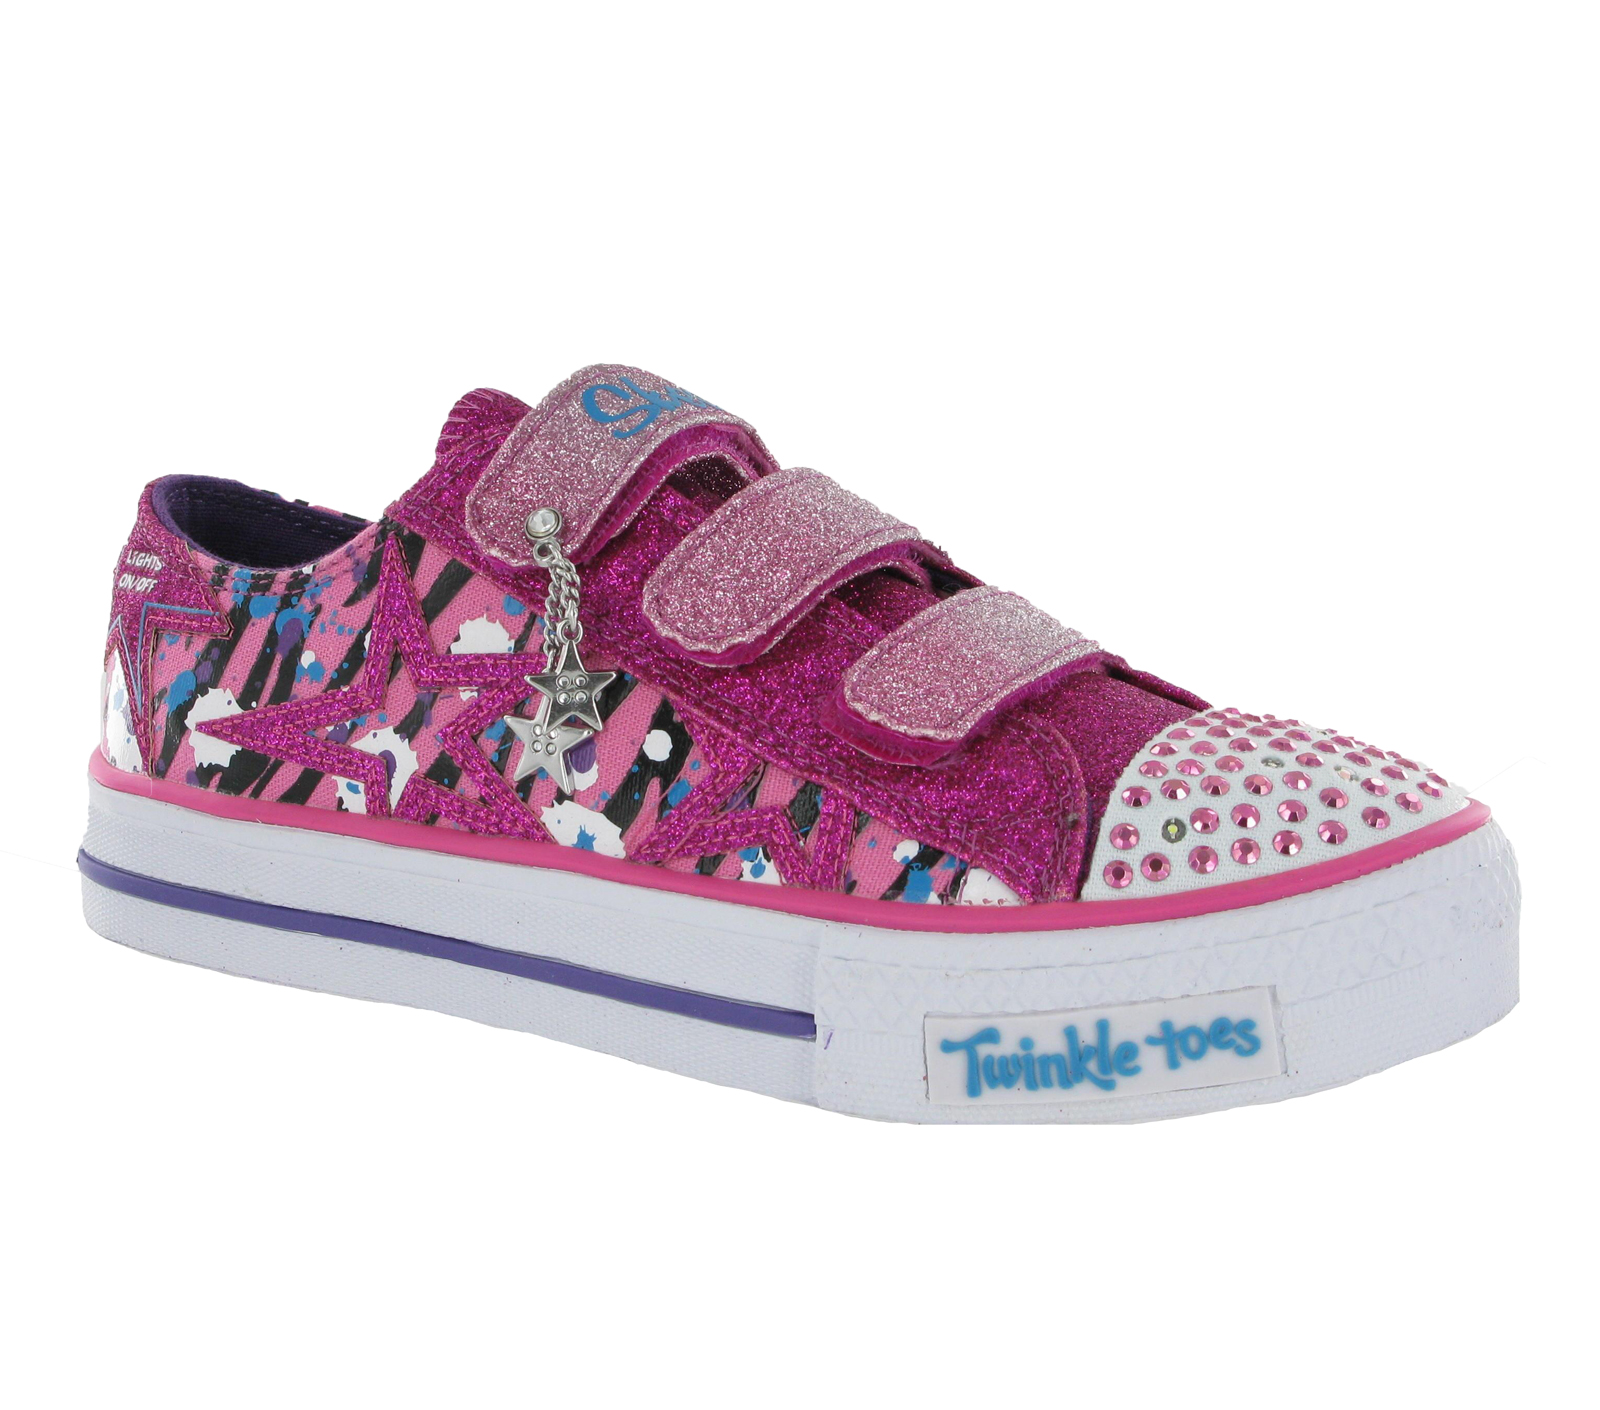 new older girls kids skechers twinkle toes light up velcro. Black Bedroom Furniture Sets. Home Design Ideas